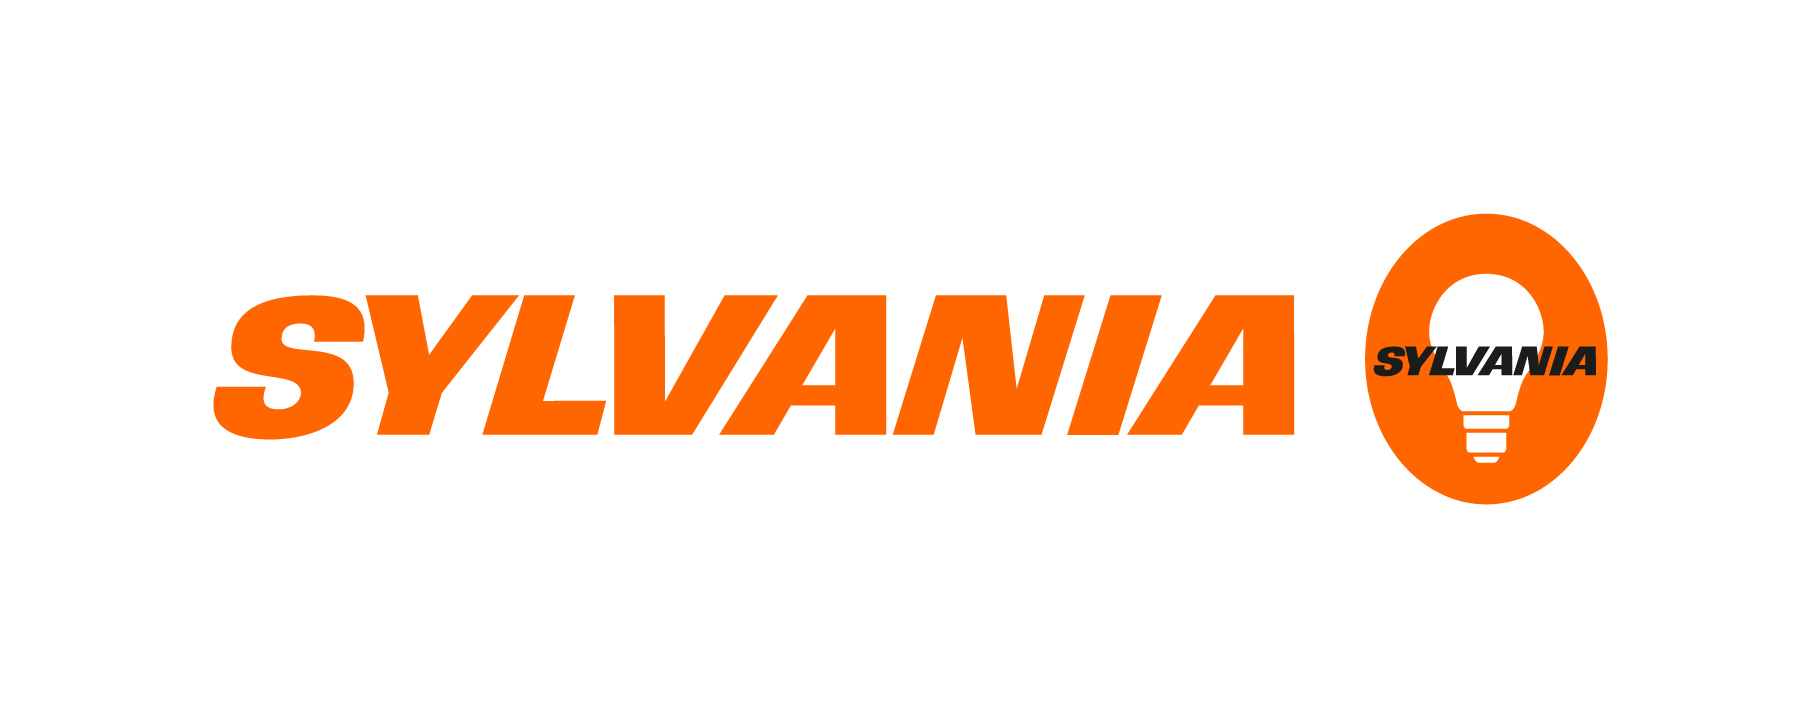 Sylvania Socket Survey Shows Rise Of